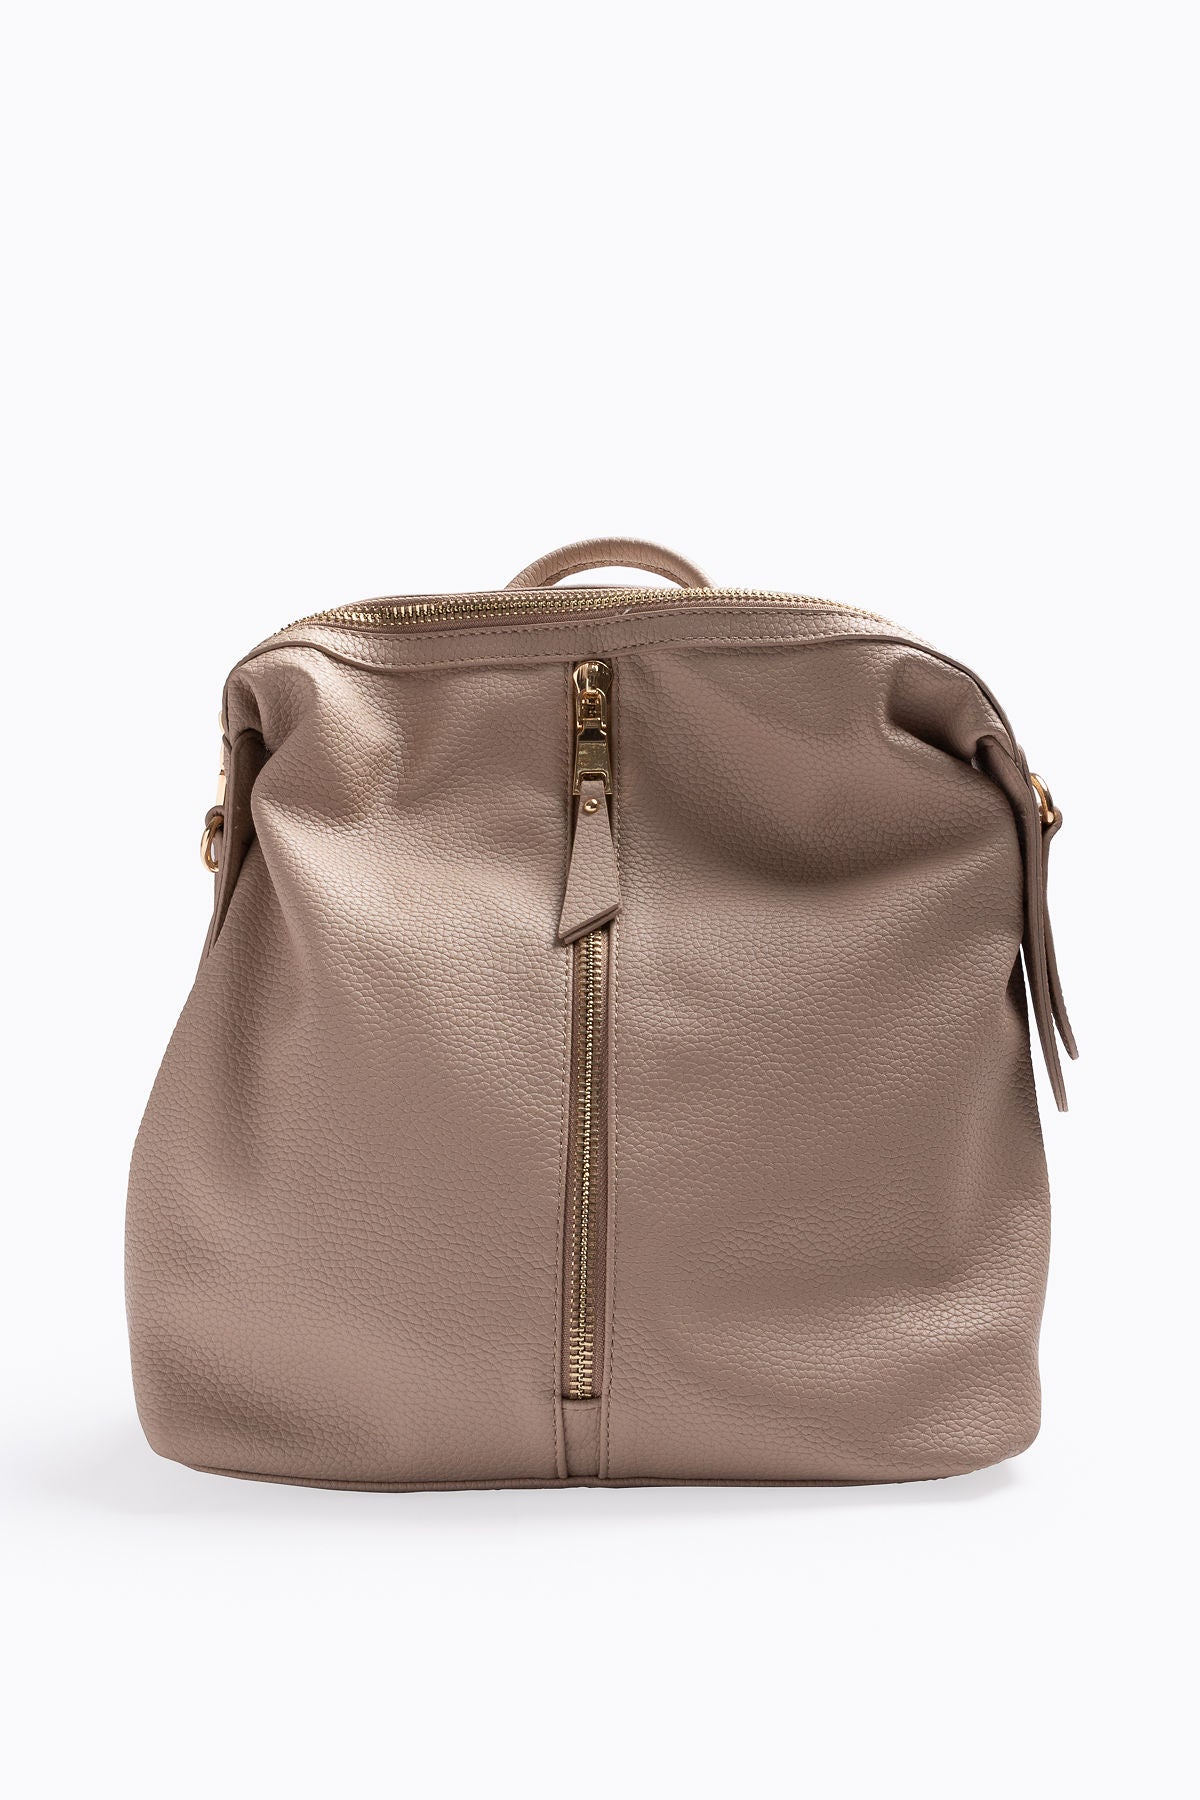 The Kenzie Daypack in Natural